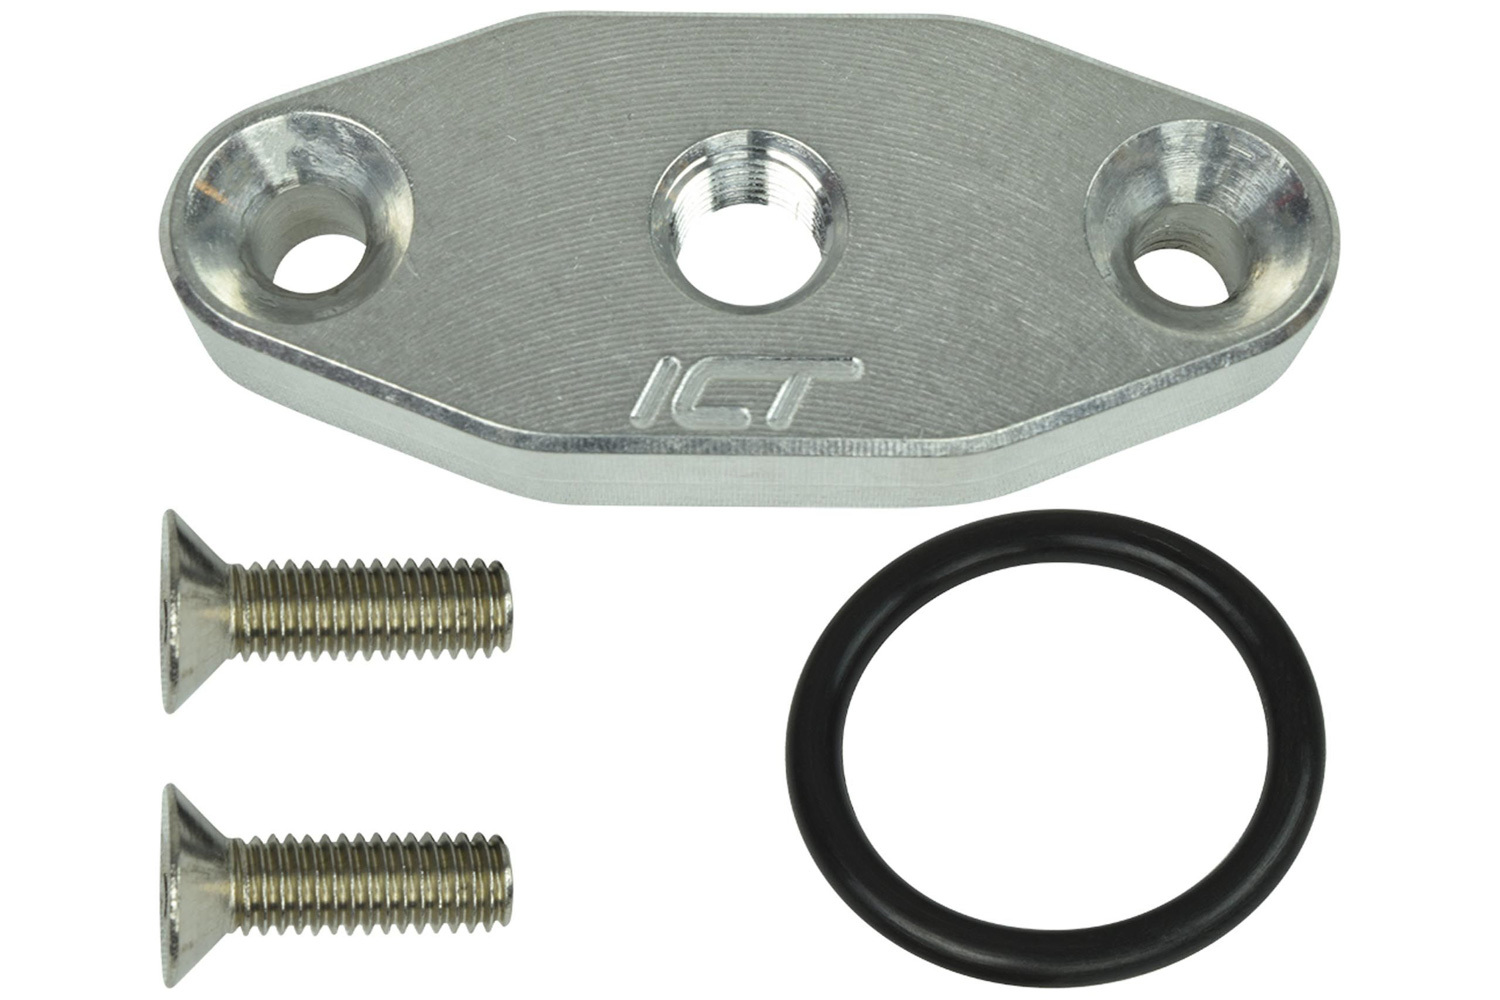 ICT Billet 551608 Oil Cooler Adapter, 1/8 in NPT Female Port, 1/2 in Thick, Hardware / O-Ring, Aluminum, Natural, GM LS-Series, Each